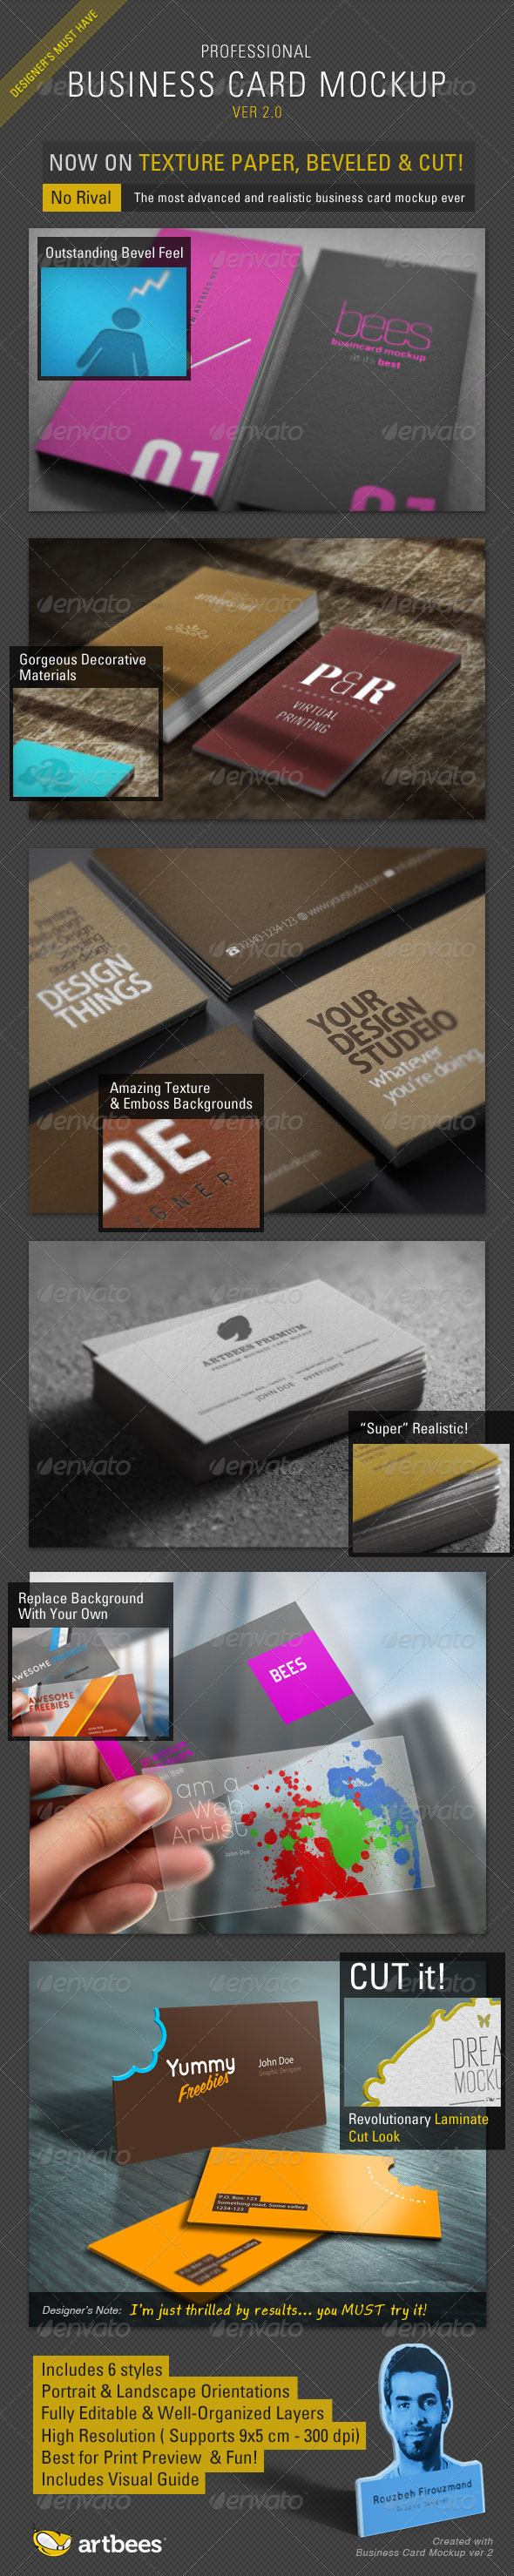 Business Card Mockup Pro ver 2.0